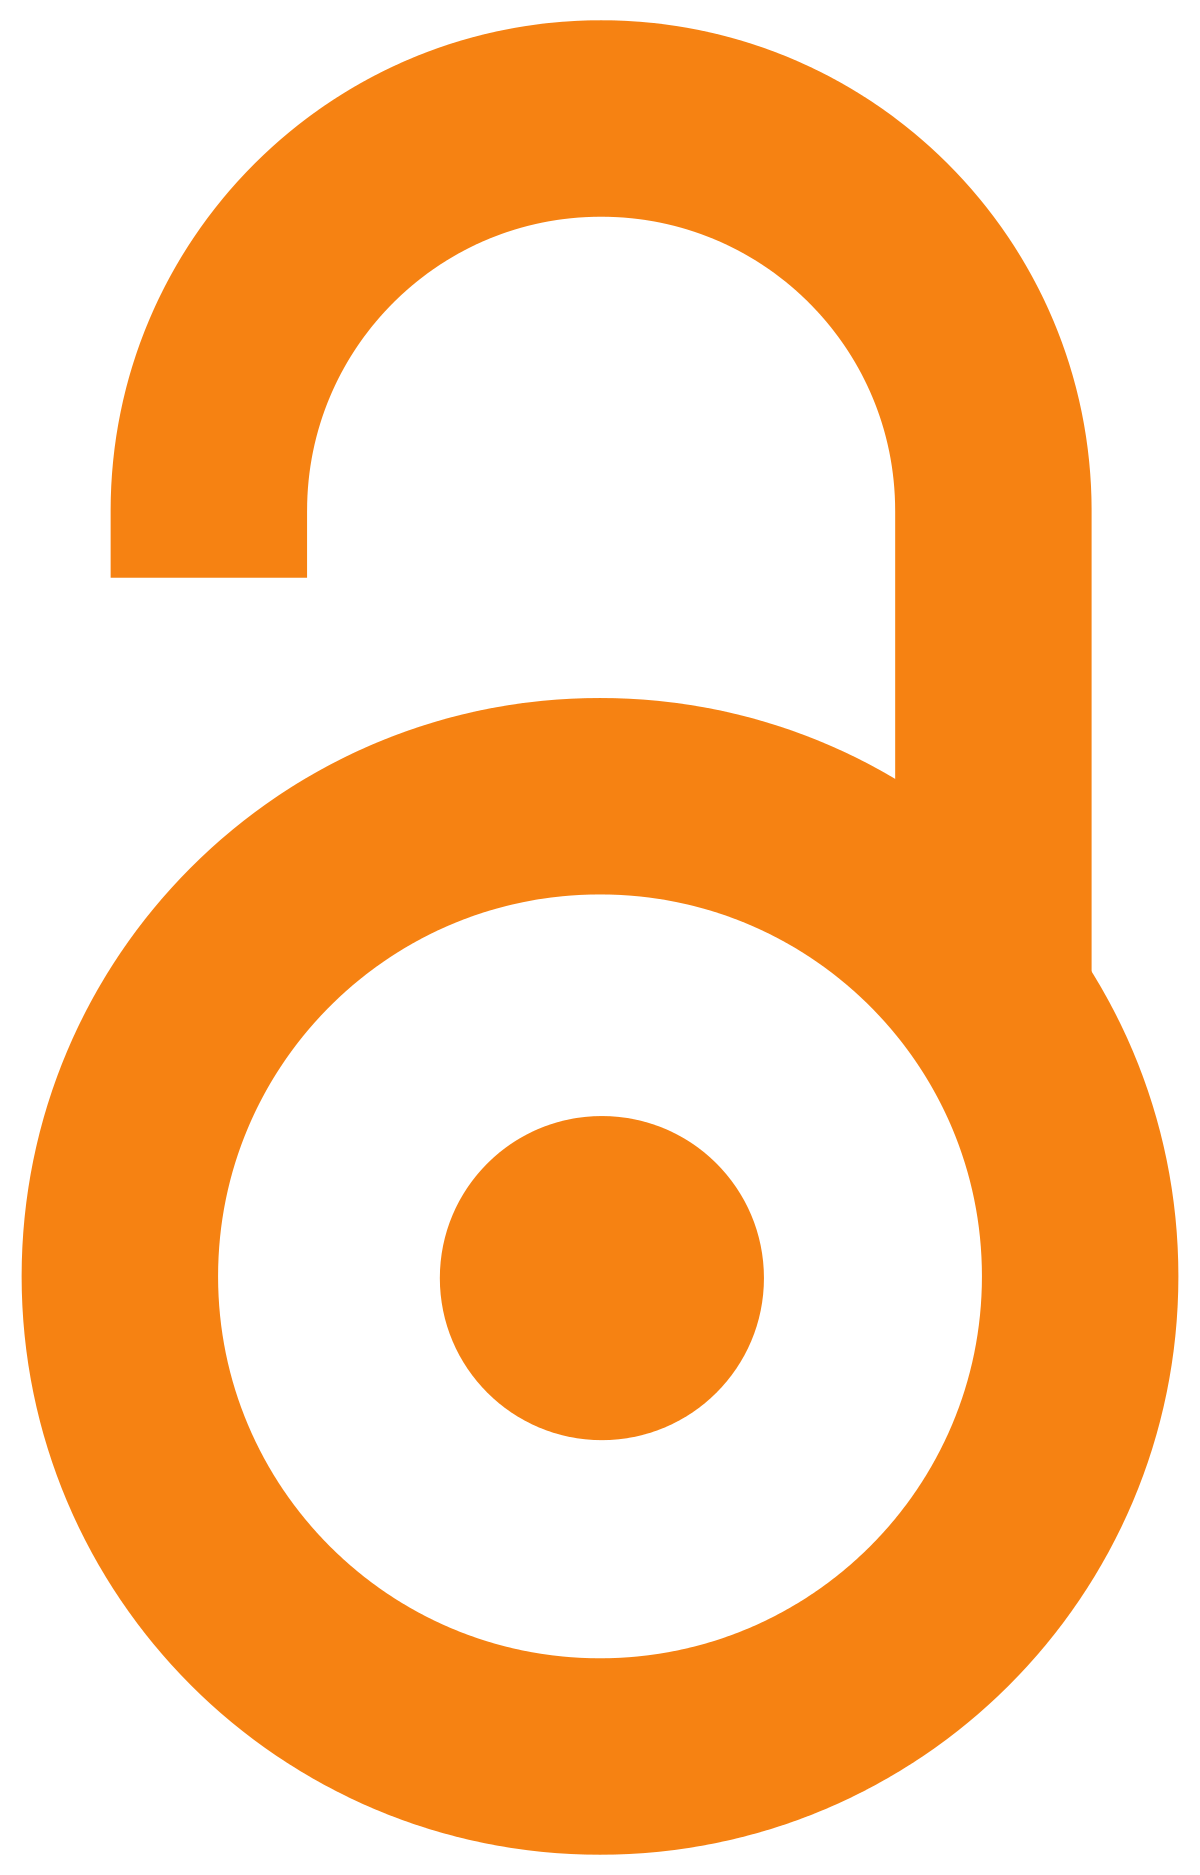 Open Access logo (stylized open lock)